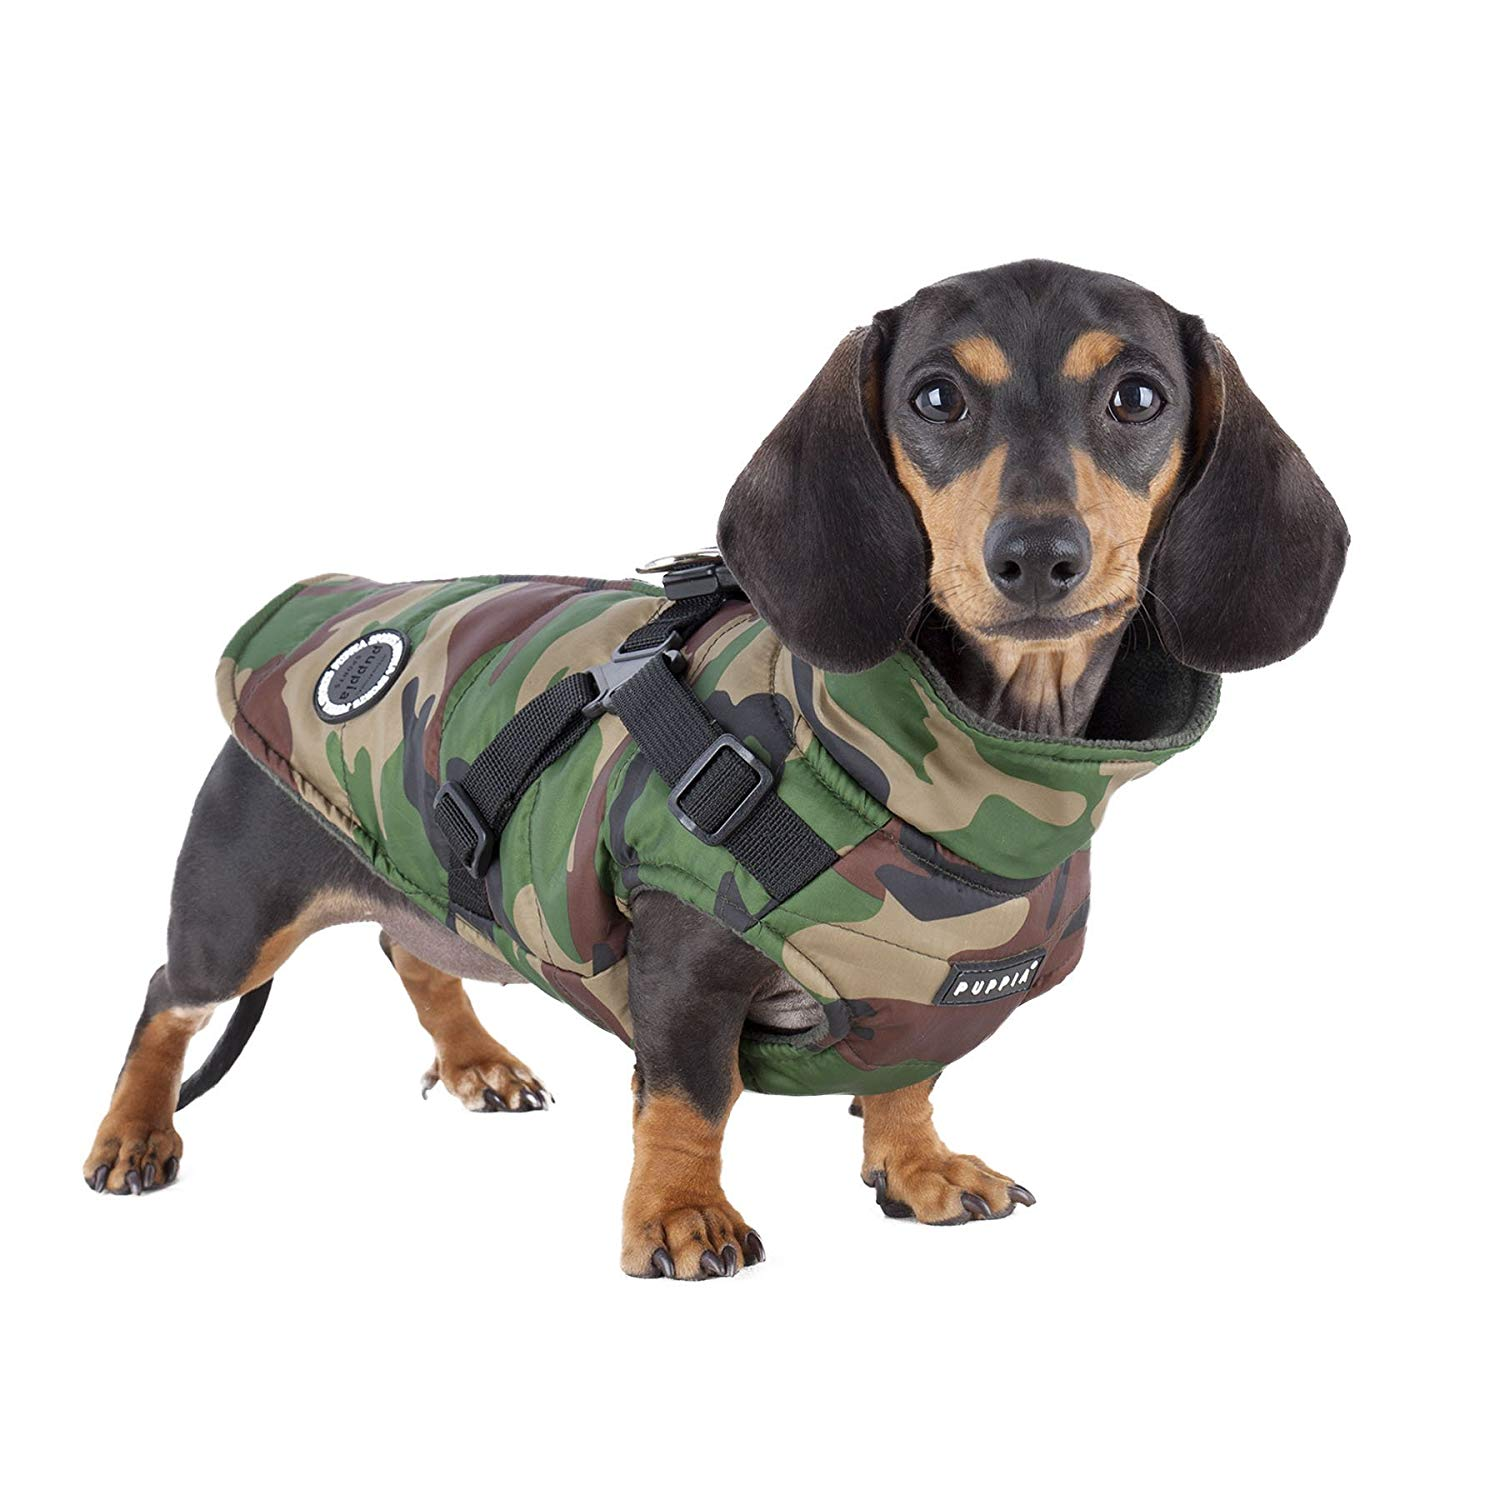 A wiener dog in a camouflage coat.